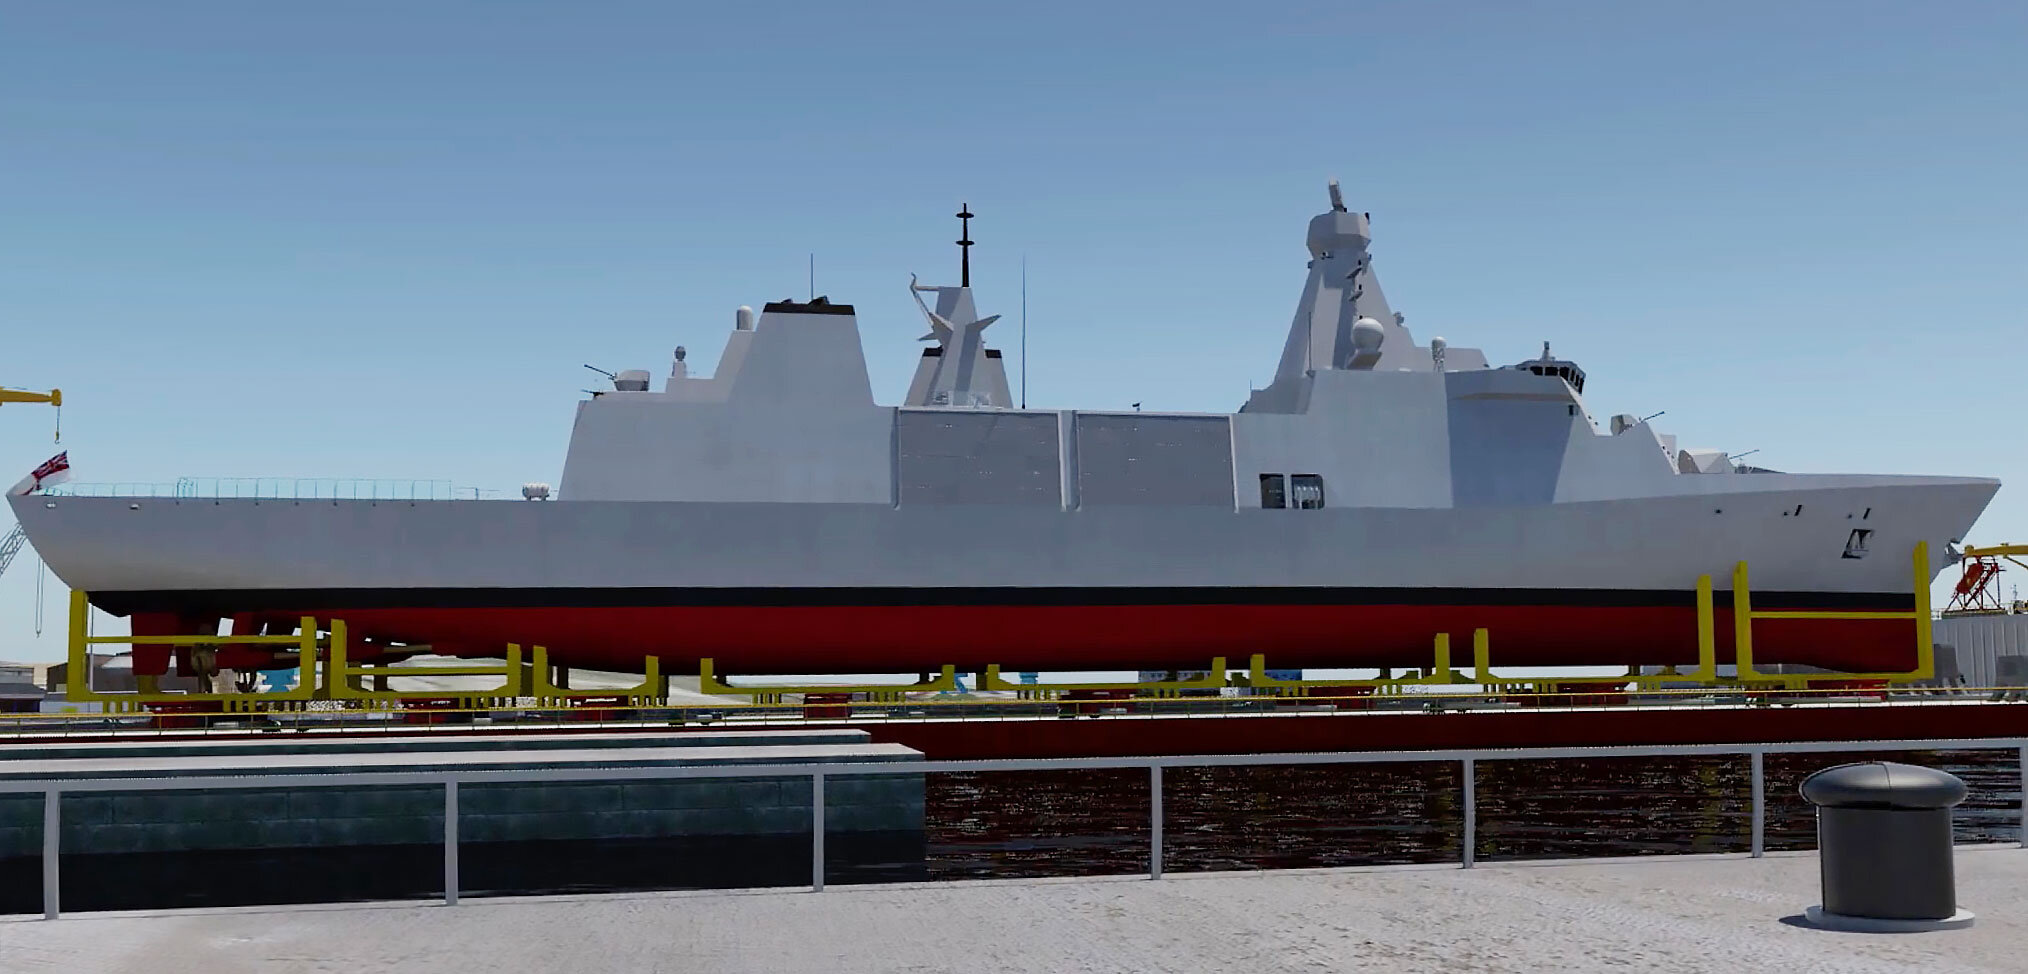 Royal Navy formally announces the names of the 'inspiration class' Type 31 frigates